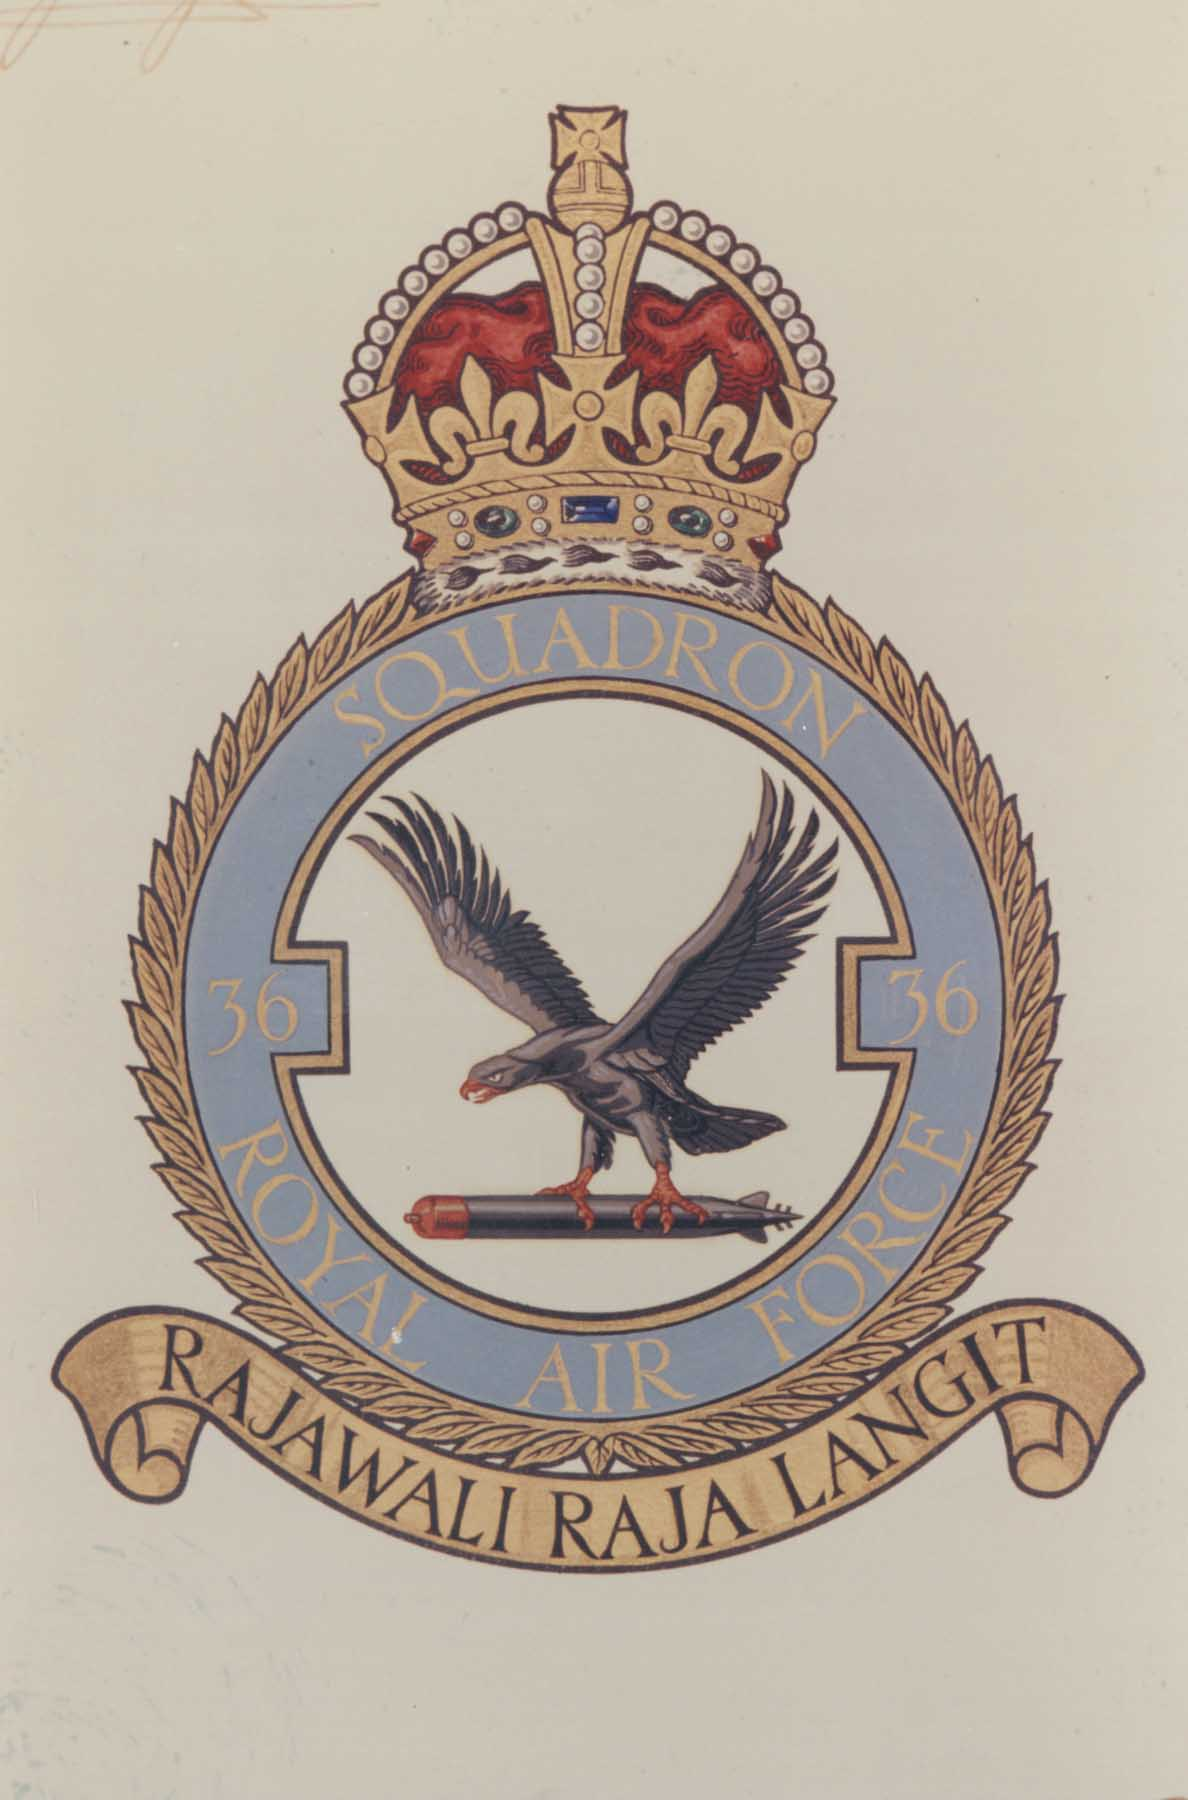 36 Squadron official badge.